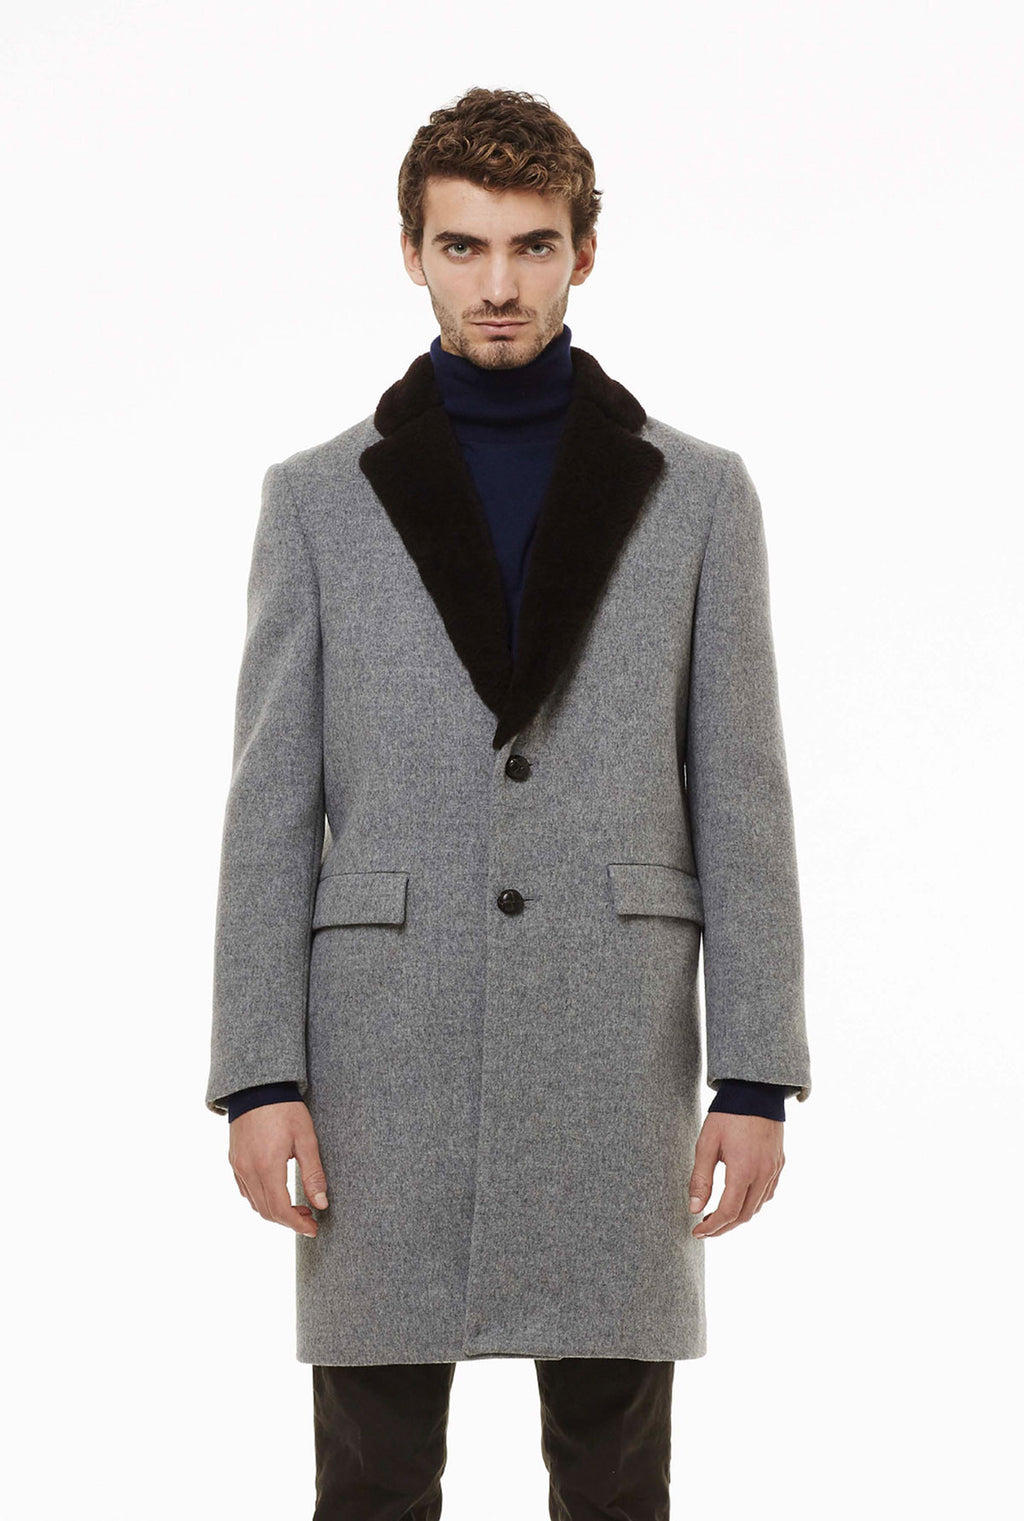 Two-buttons coat in loden fabric with fur.